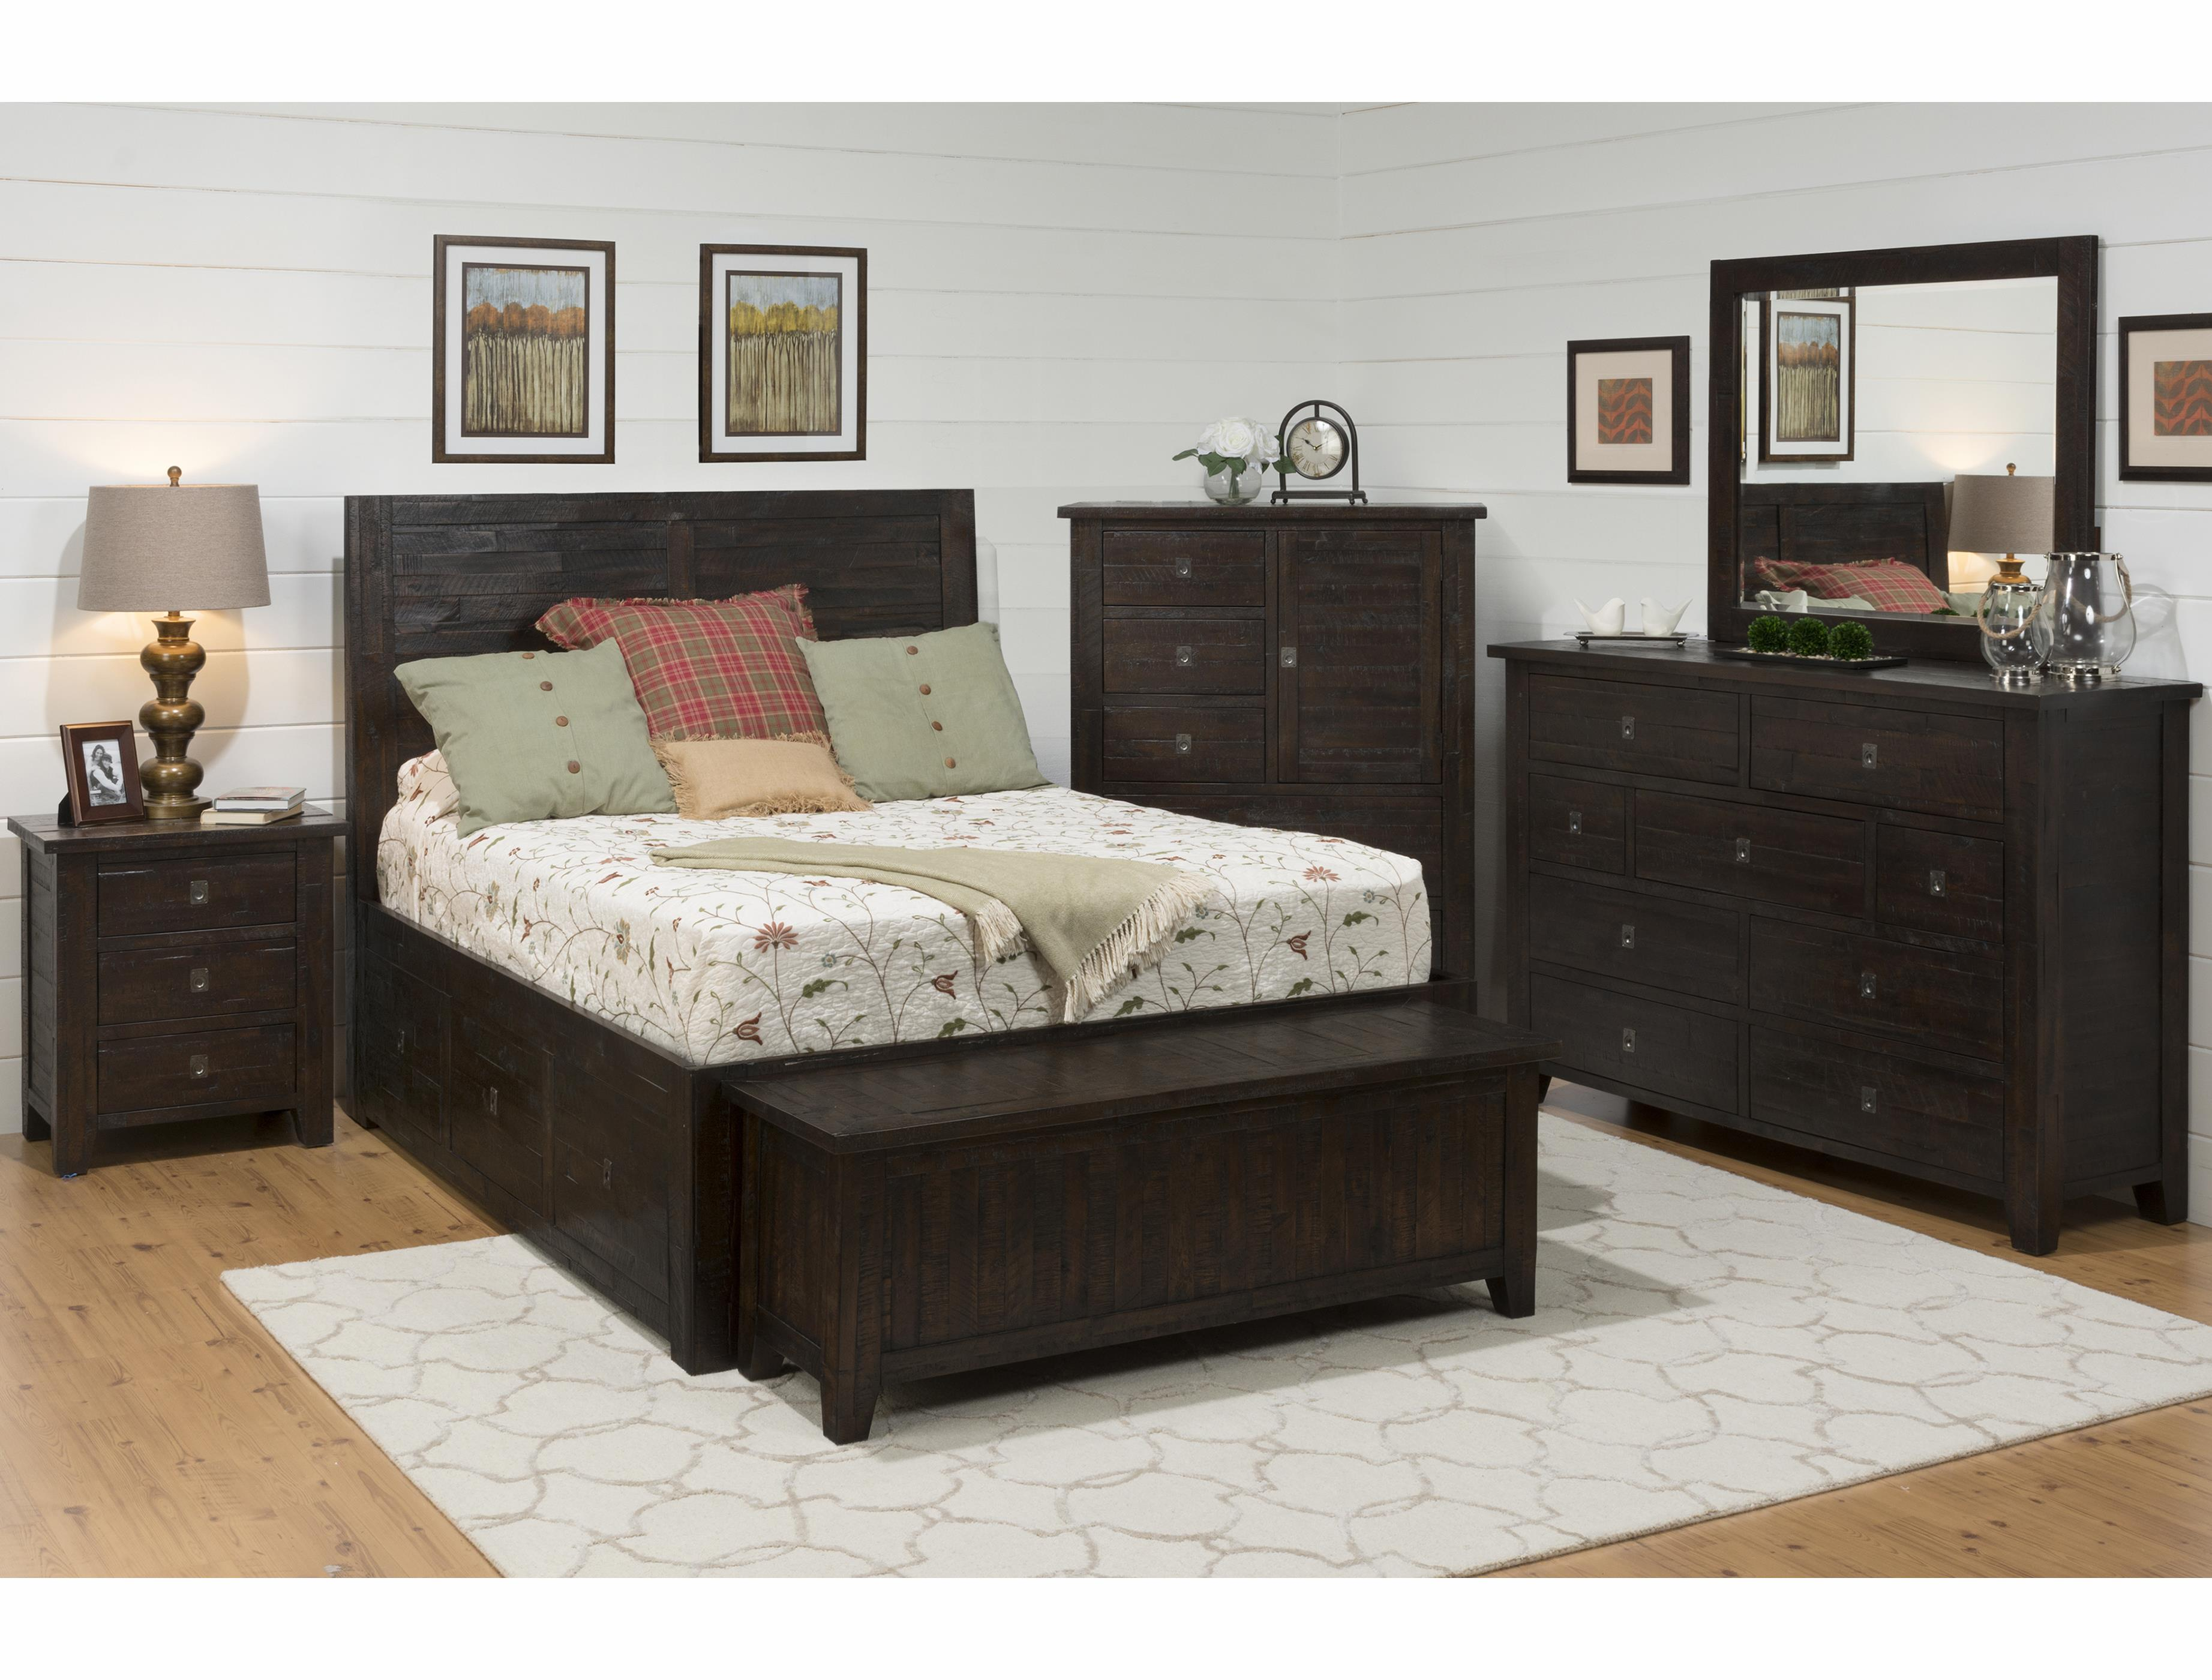 Kona Grove Queen Bedroom Group by Jofran at Fine Home Furnishings